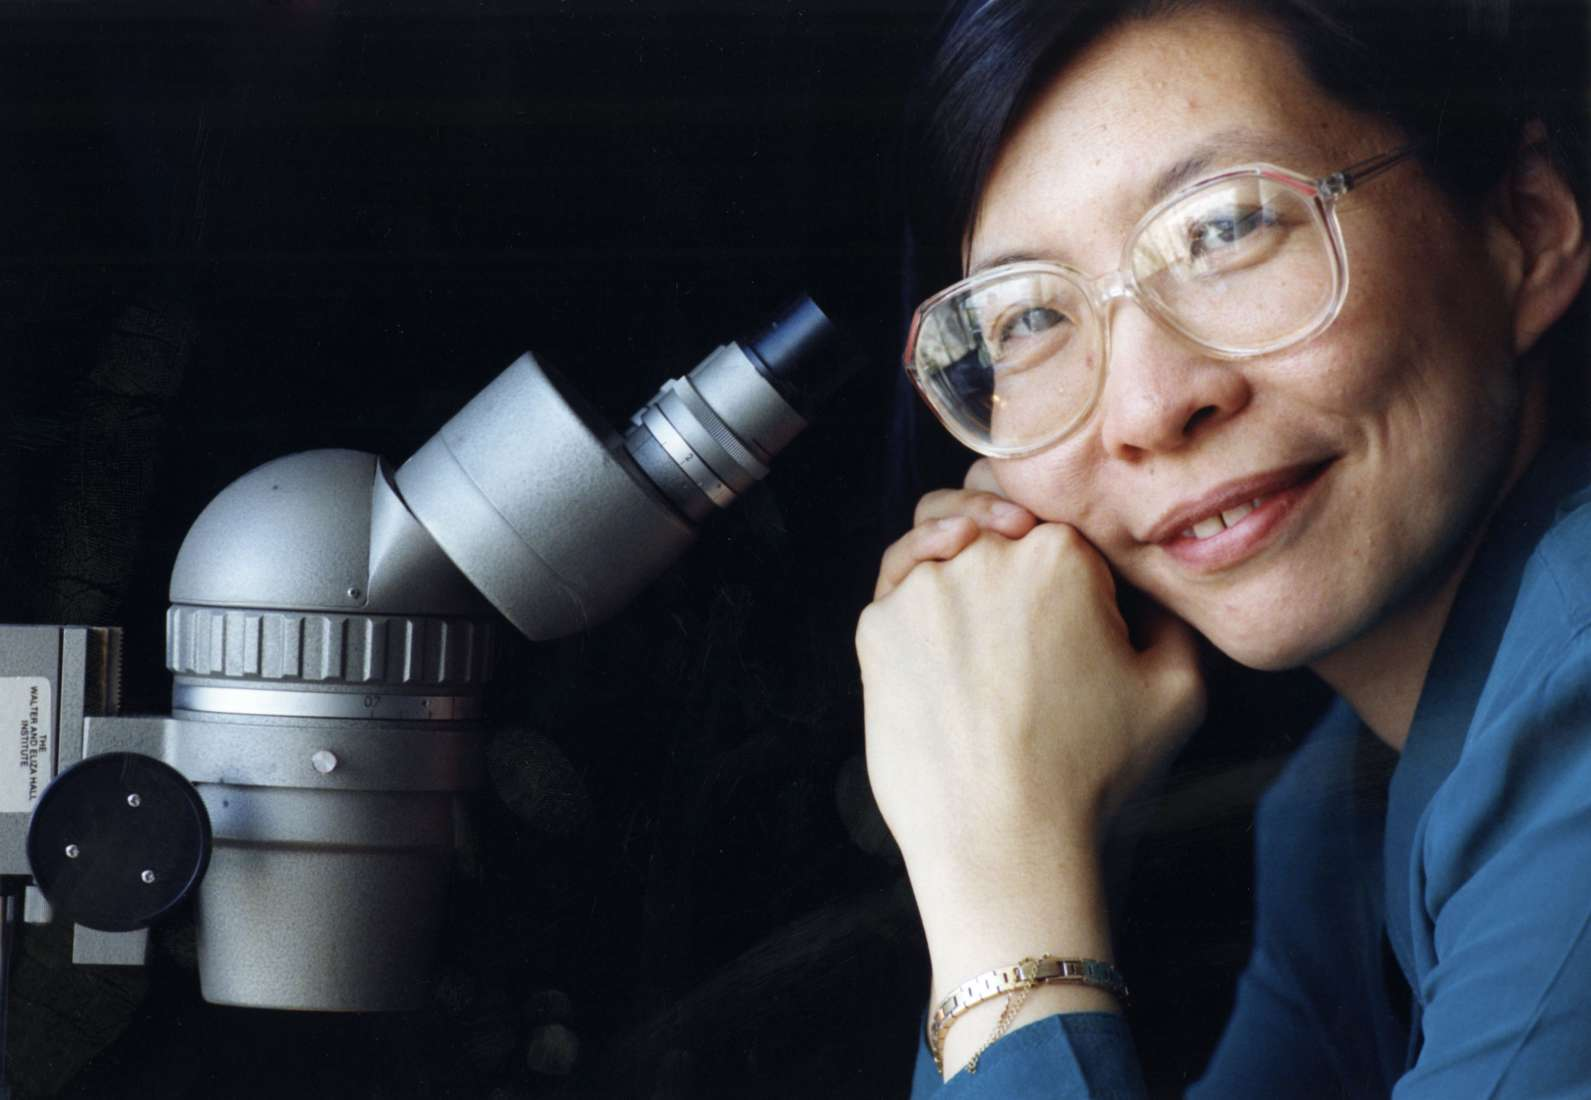 Close up image of woman and microscope, credit: The Australian